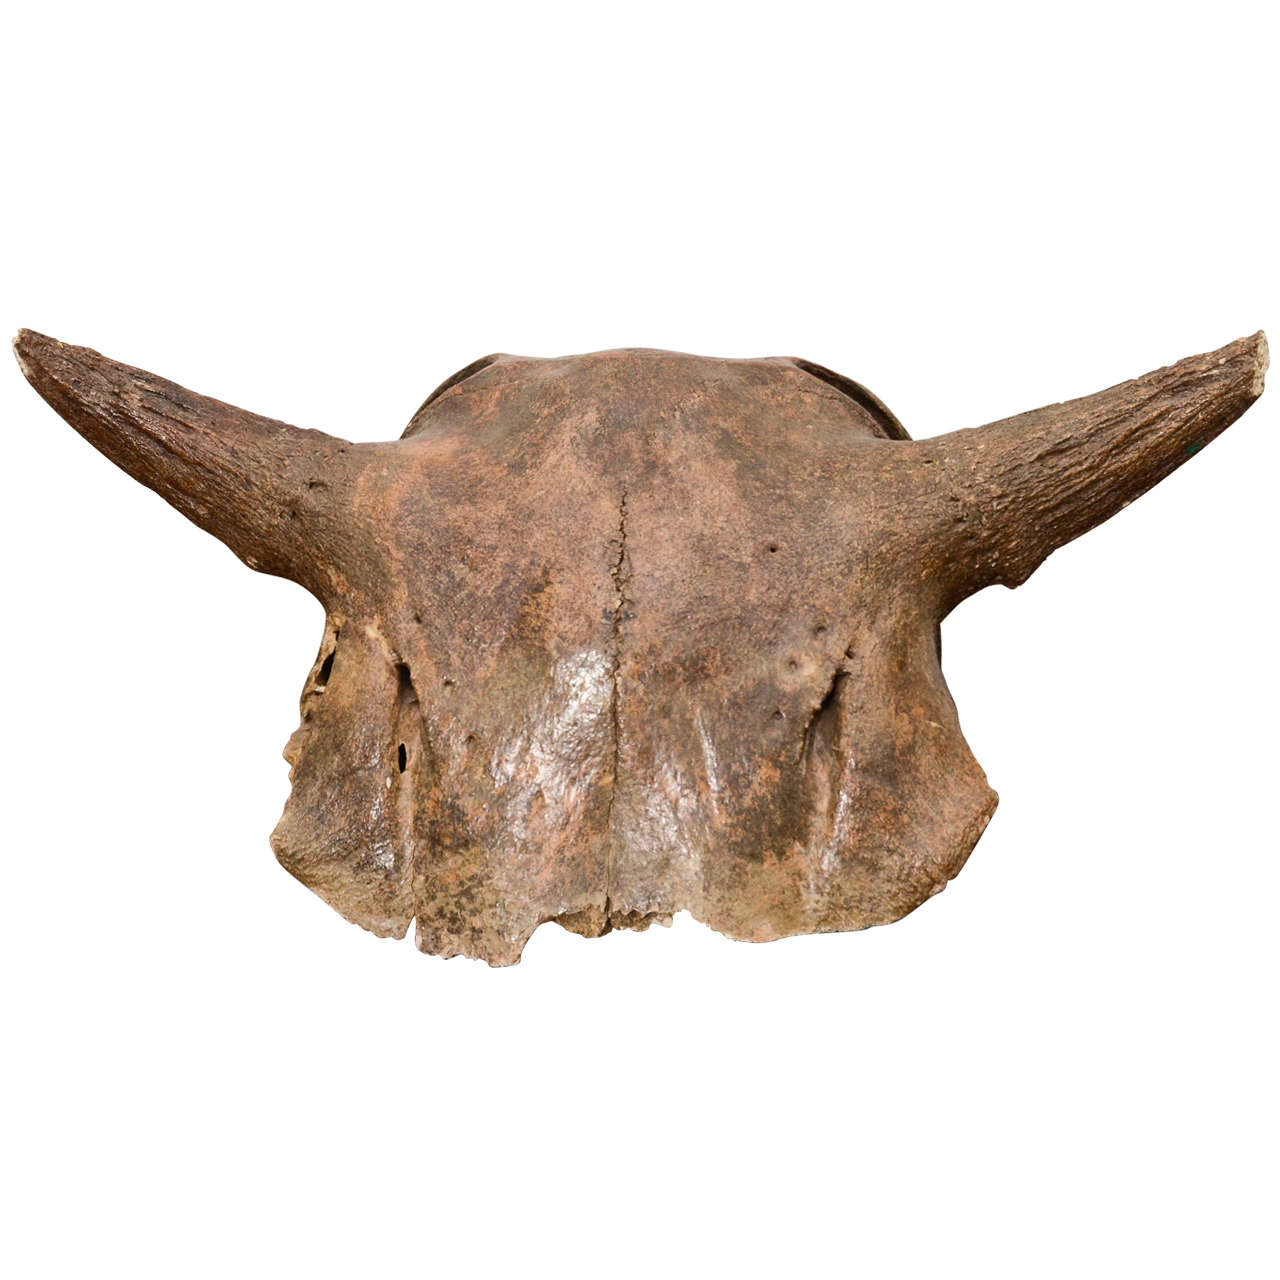 Aged and Patinated Cow Skull 1